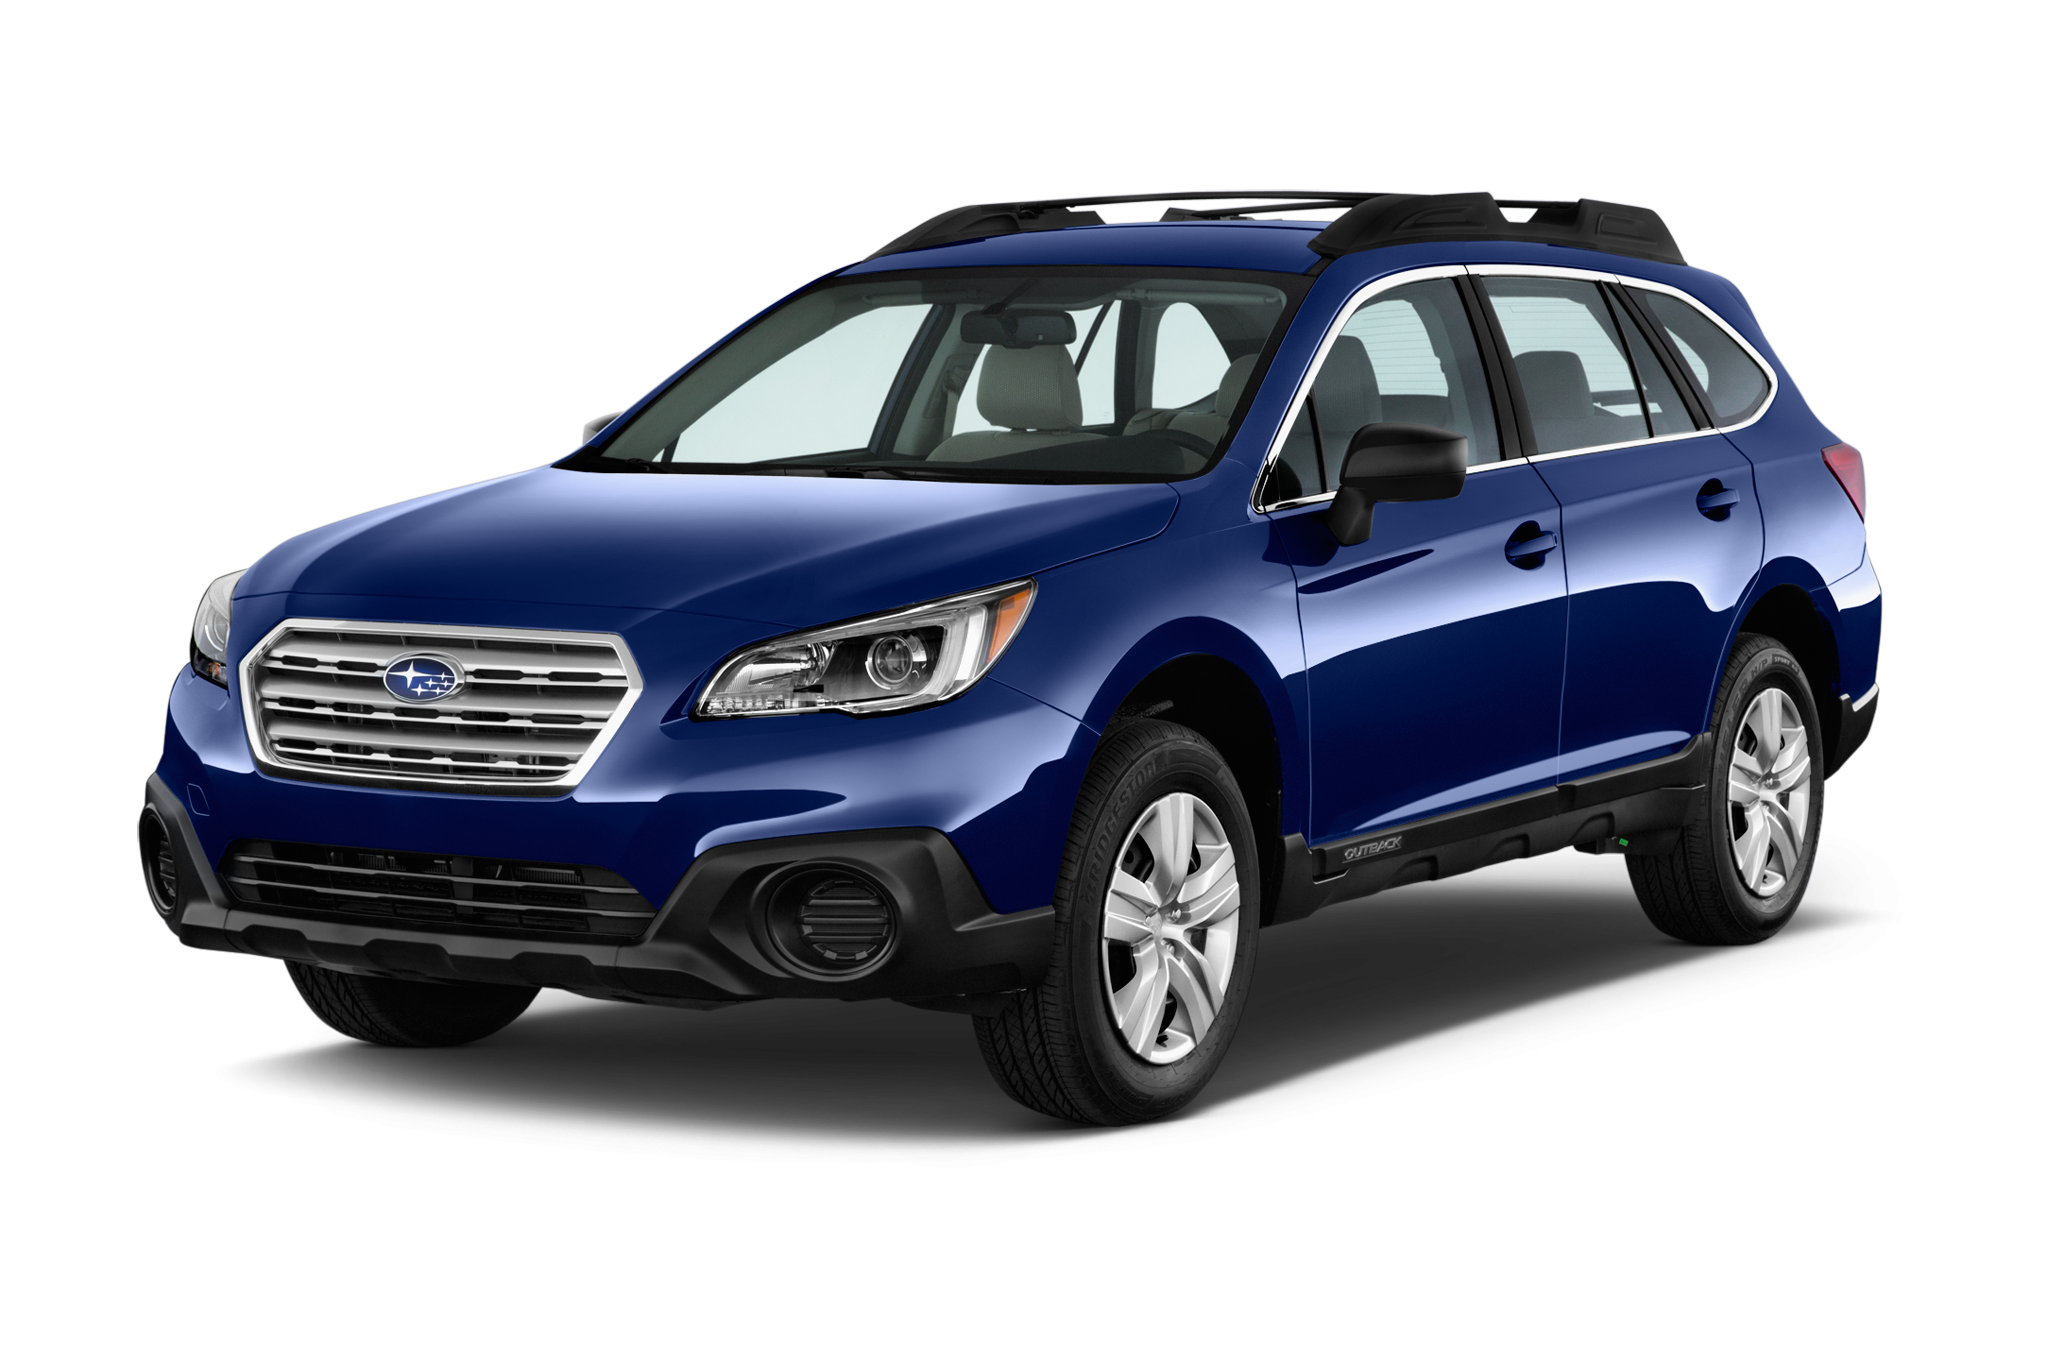 2017 Subaru Outback Buyer's Guide: Reviews, Specs, Comparisons - 2017 Subaru Outback Limited Owners Manual